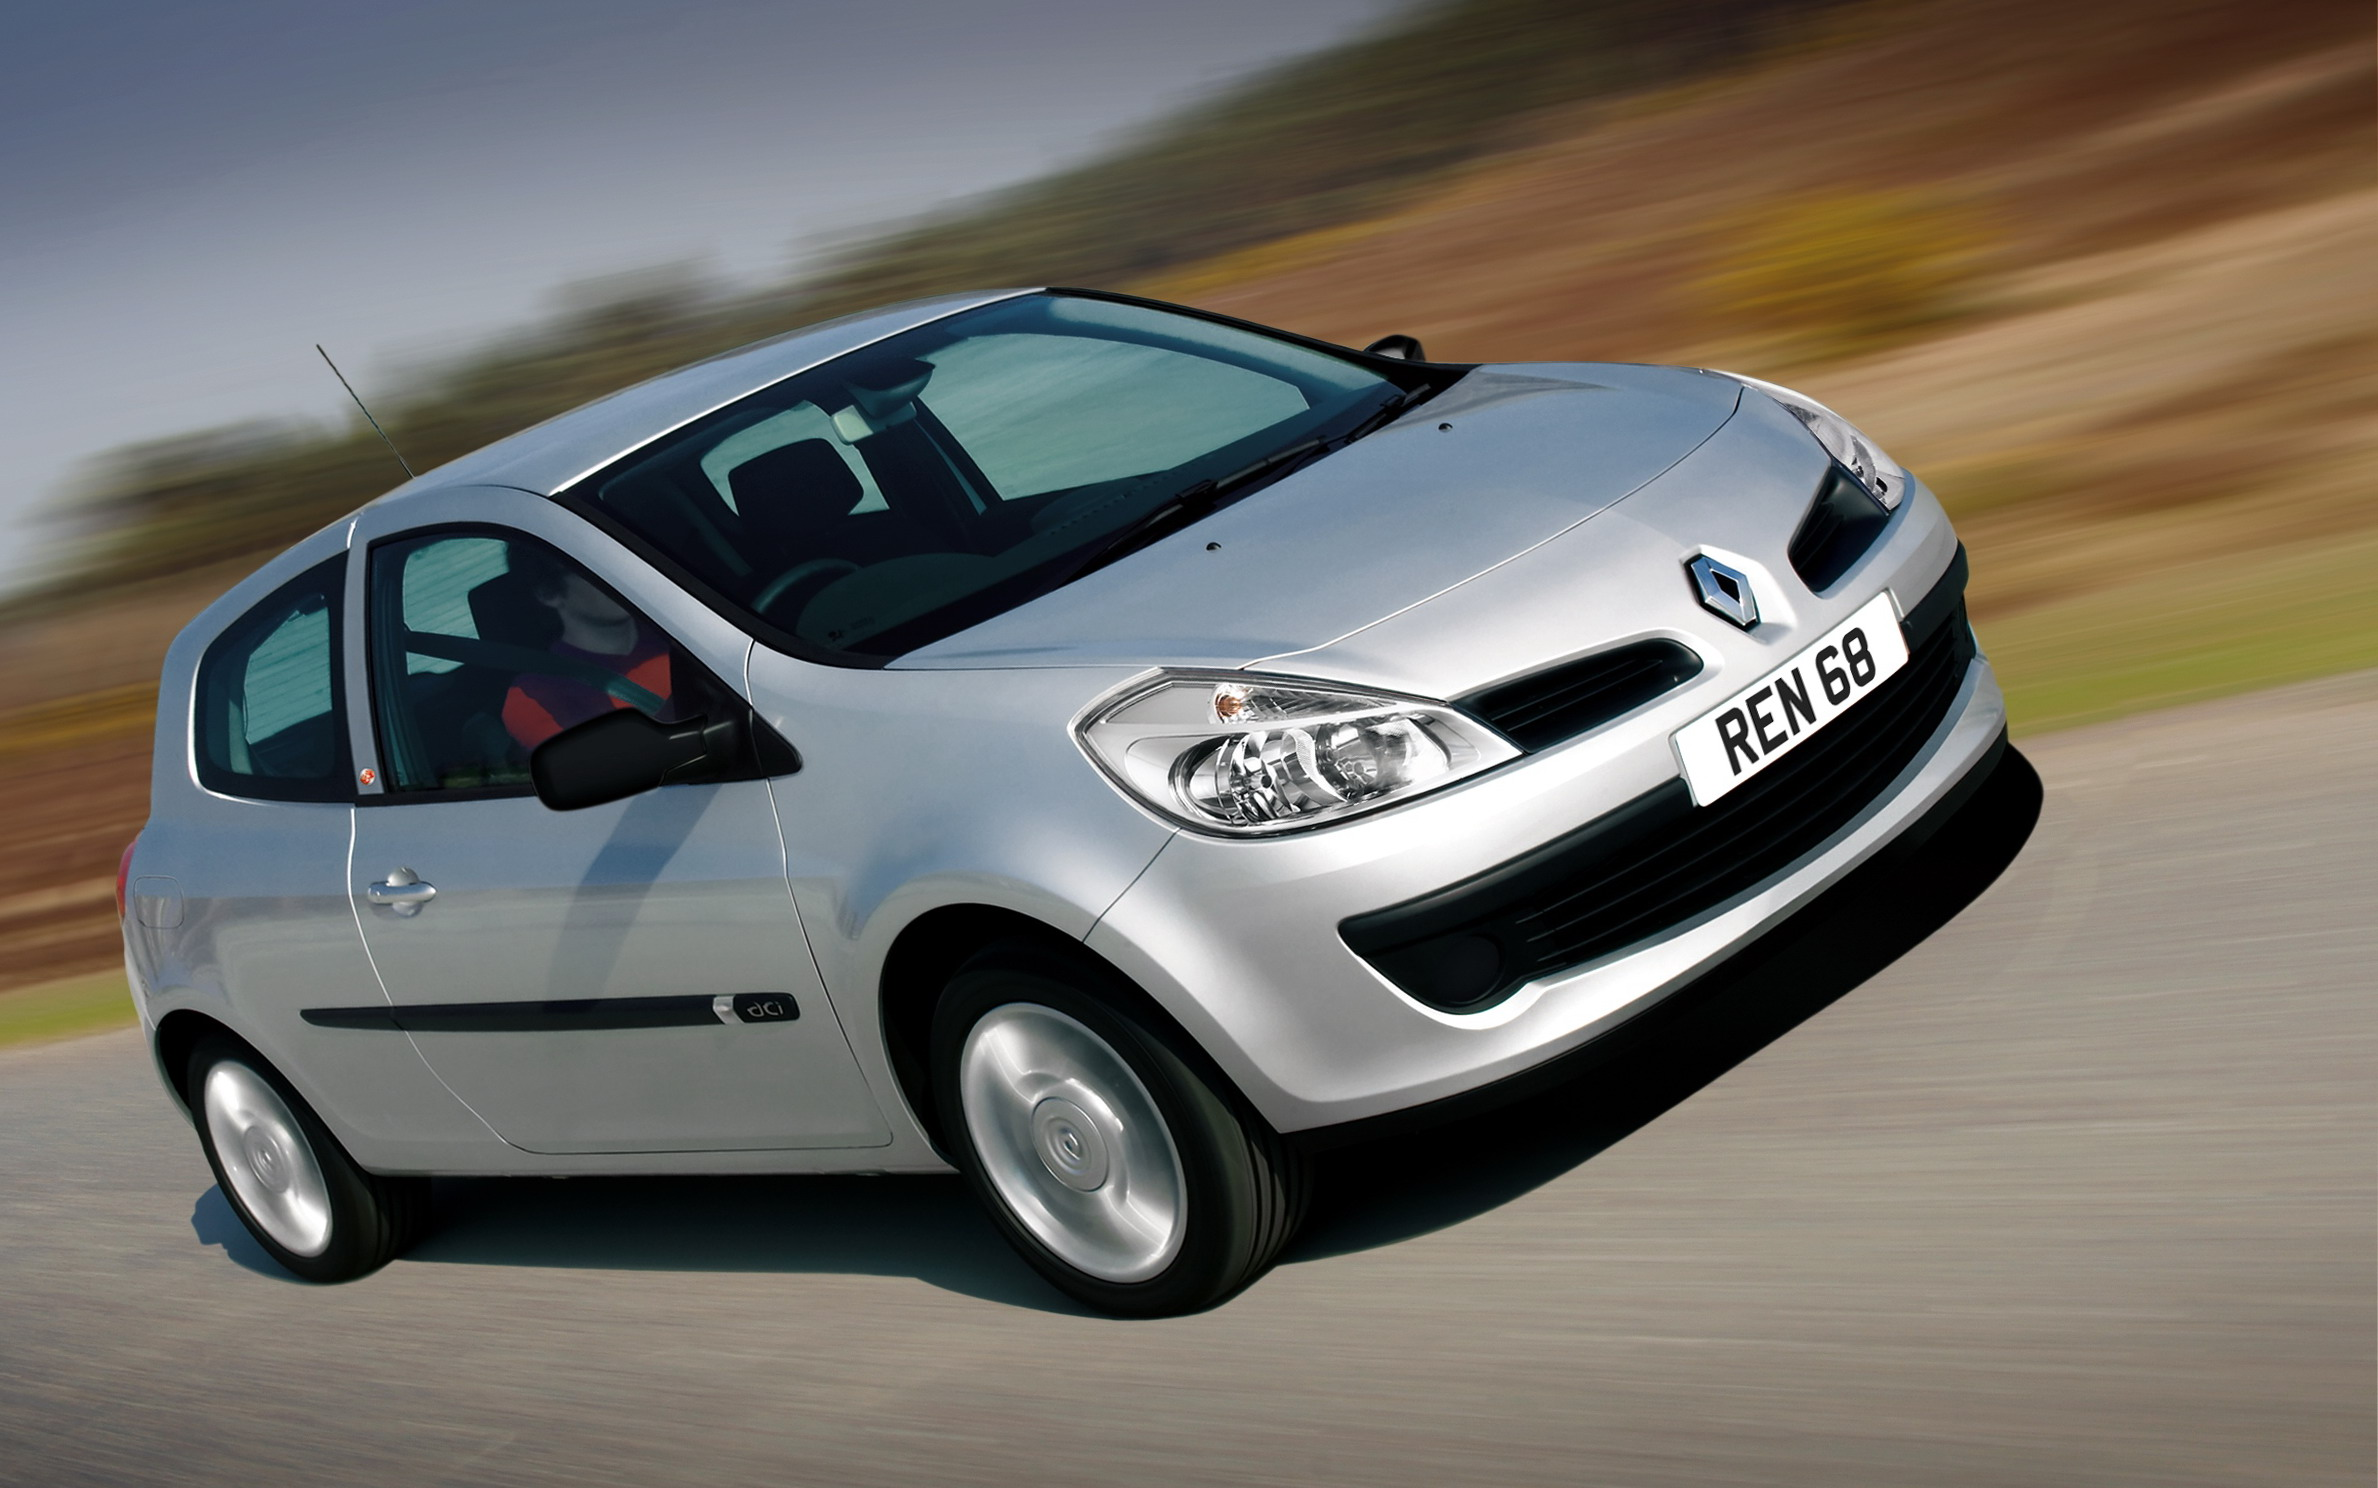 2007 renault clio tomtom review gallery top speed. Black Bedroom Furniture Sets. Home Design Ideas